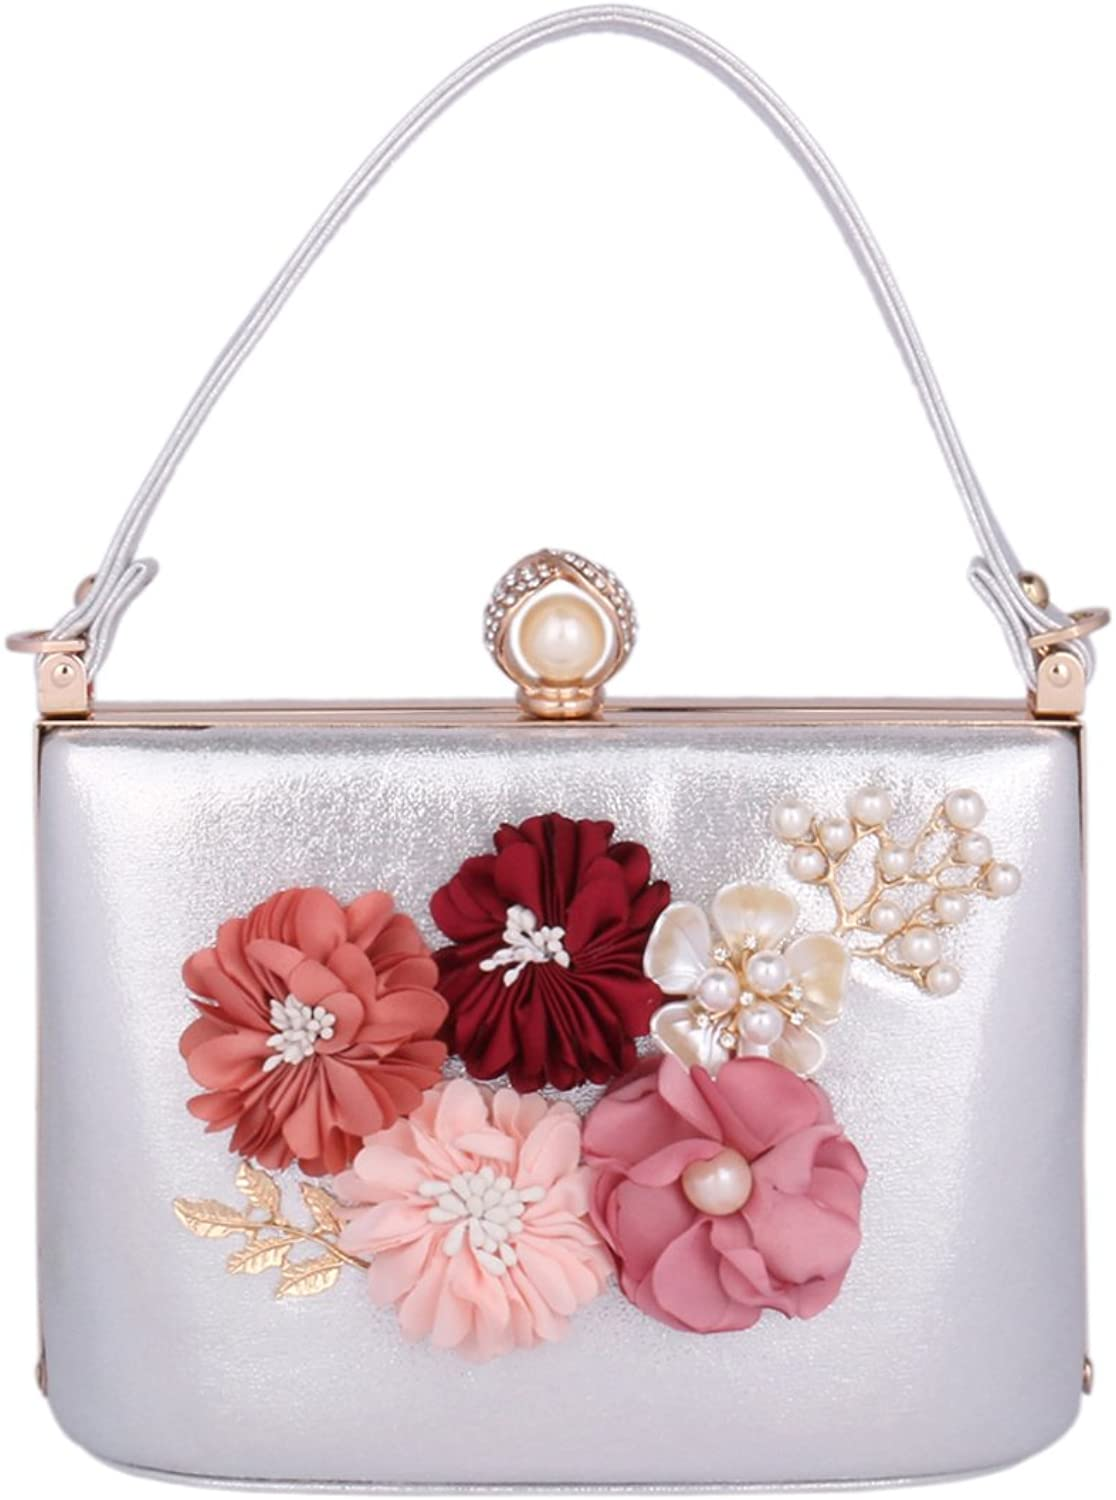 Damara Women's Beaded Satin Flower Handbag Hardcase Bridal Party Evening Bag